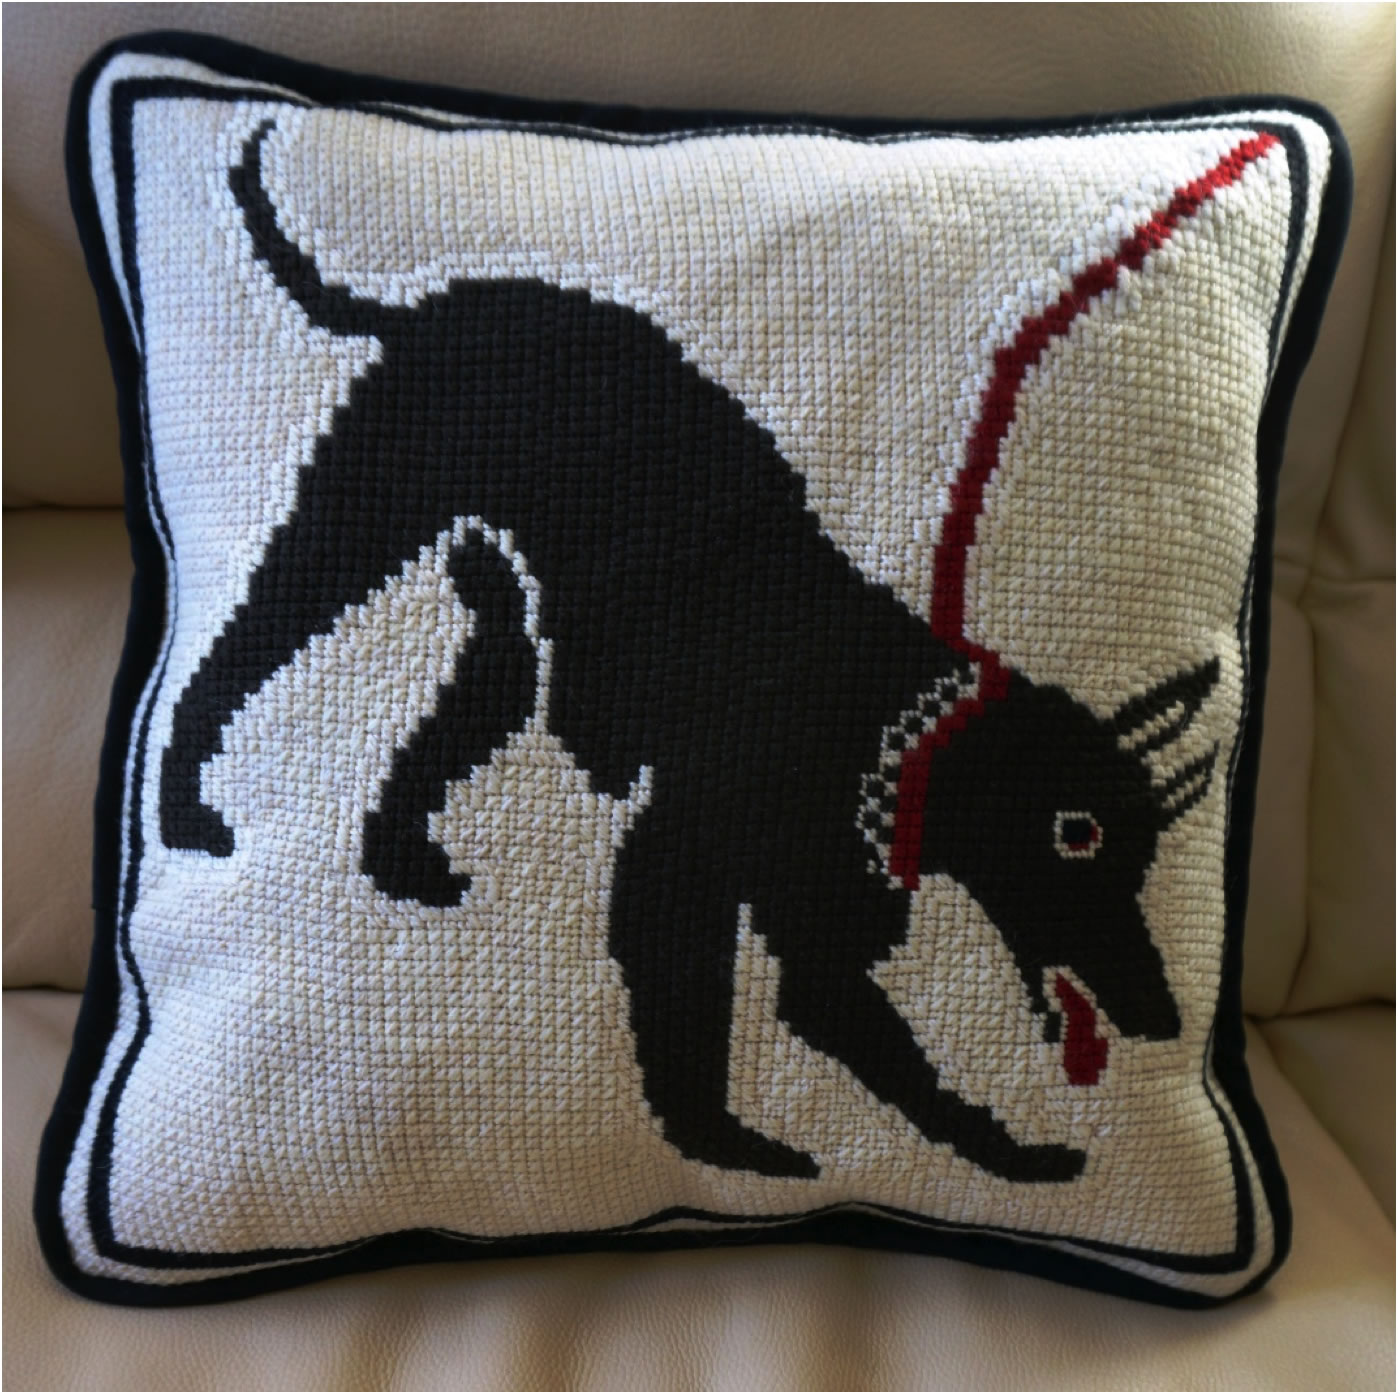 Guard dog from the House of Orpheus Needlepoint Pillow - Finished!